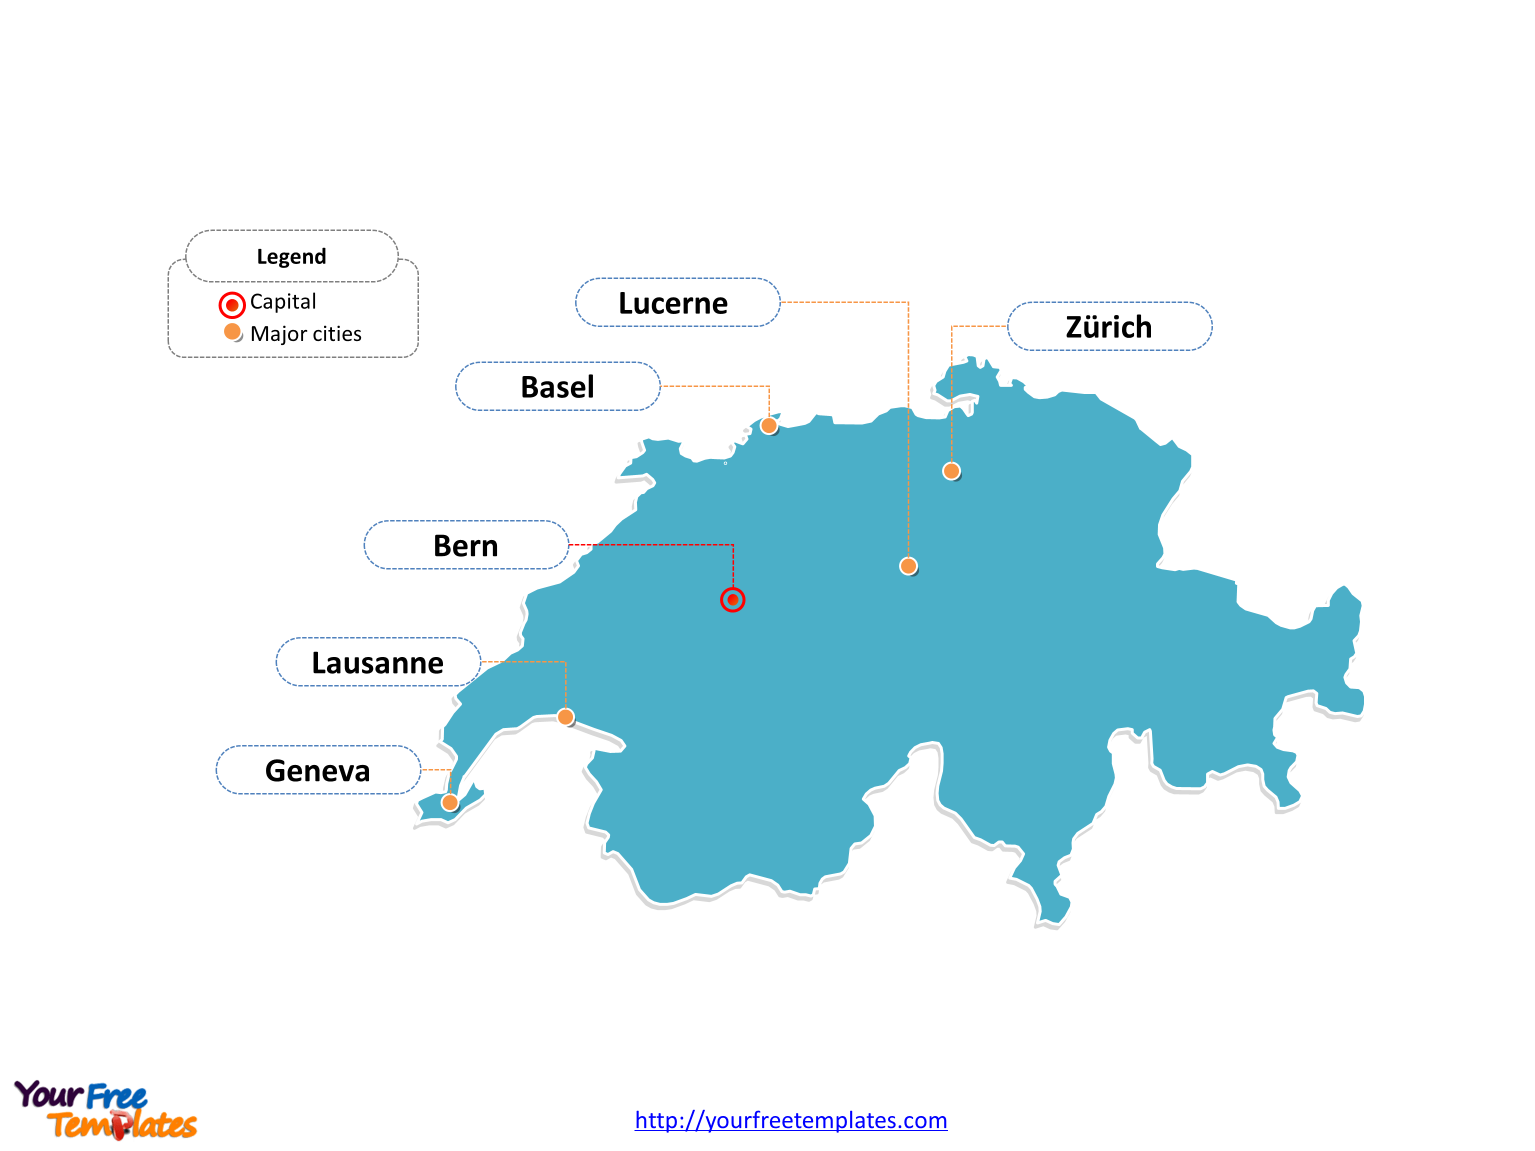 Free Switzerland Editable Map - Free PowerPoint Templates on map spain cities, map tx cities, map with cities, map china cities, map europe, map france cities, map equatorial guinea cities, switzerland largest cities, map italy cities, map georgia cities, map of the usa cities, map germany cities, switzerland alps cities, map az cities, map japan cities, map jordan cities, switzerland capital and major cities, map india cities, map ireland cities, map england cities,